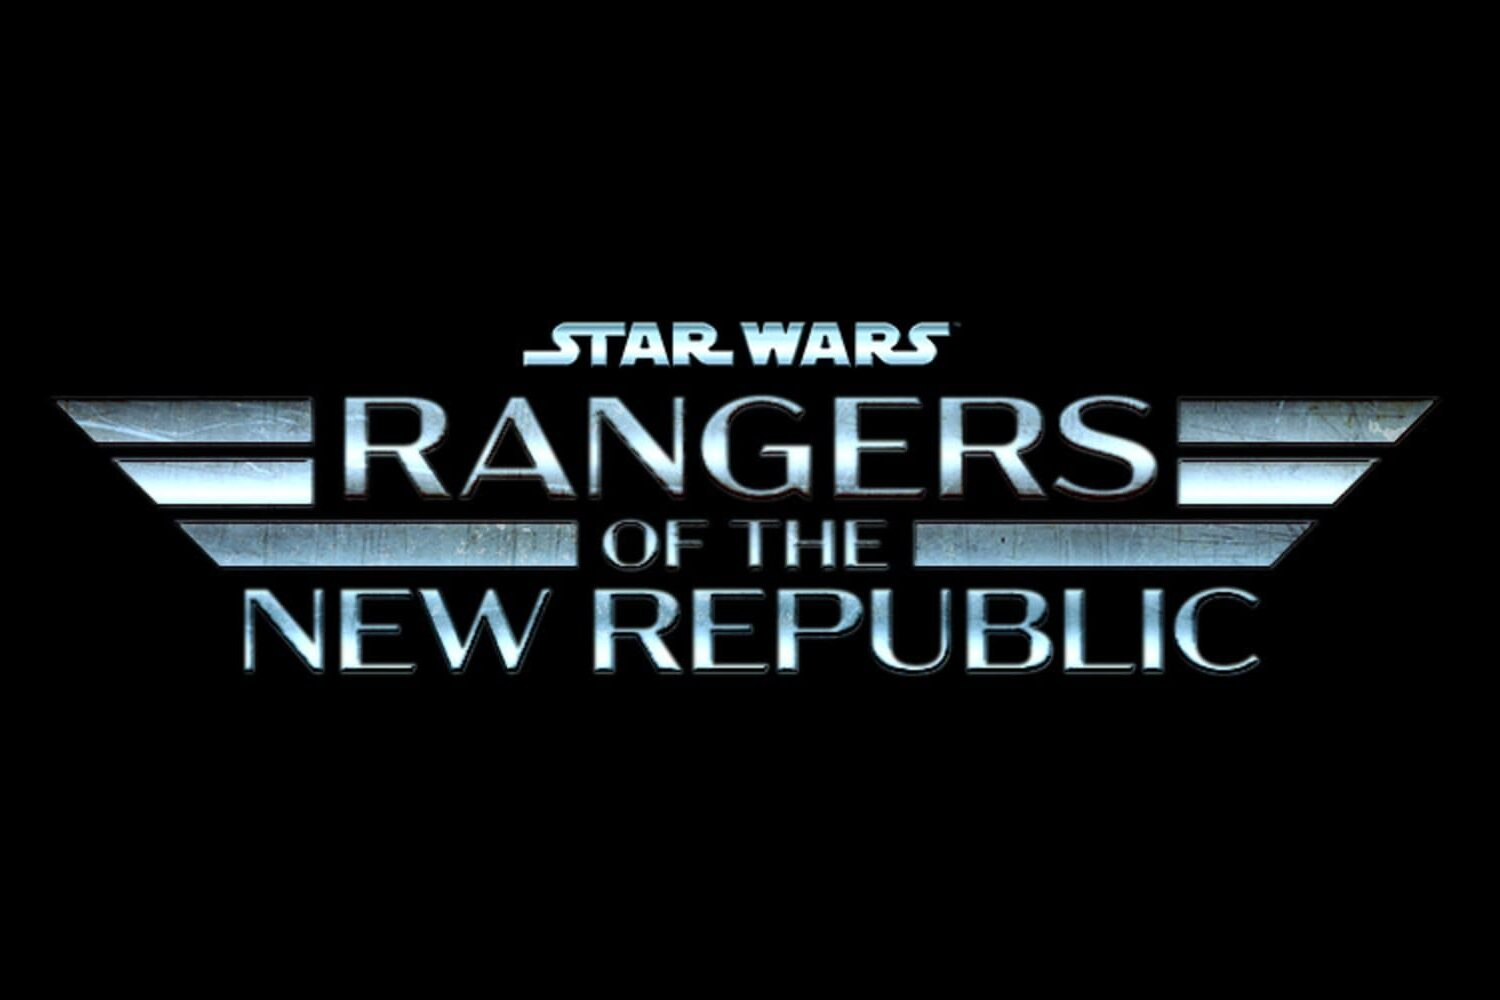 Gina Carano and Rangers of the new republic